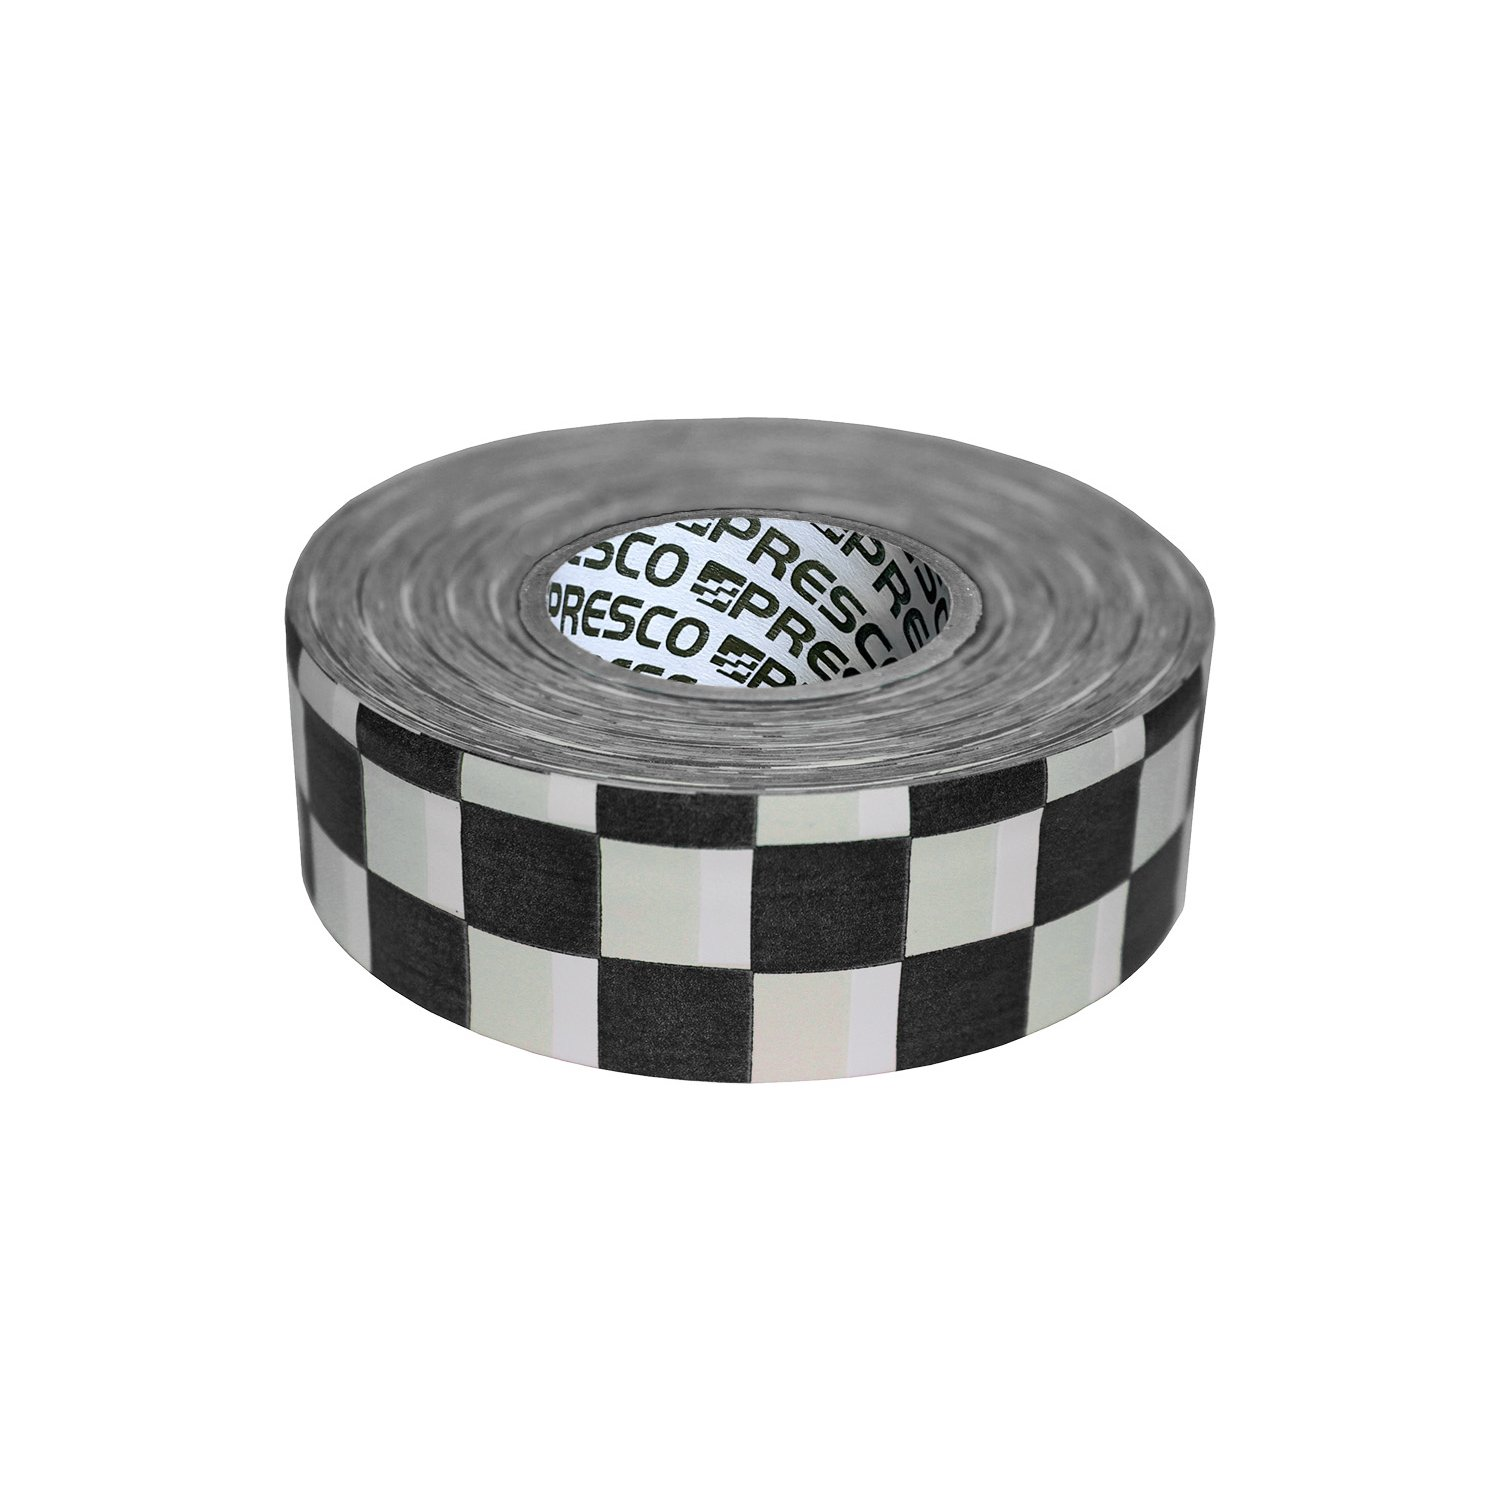 Presco Checkerboard Patterned Roll Flagging Tape: 1-3/16 in. x 300 ft. (White and Black Checkerboard)